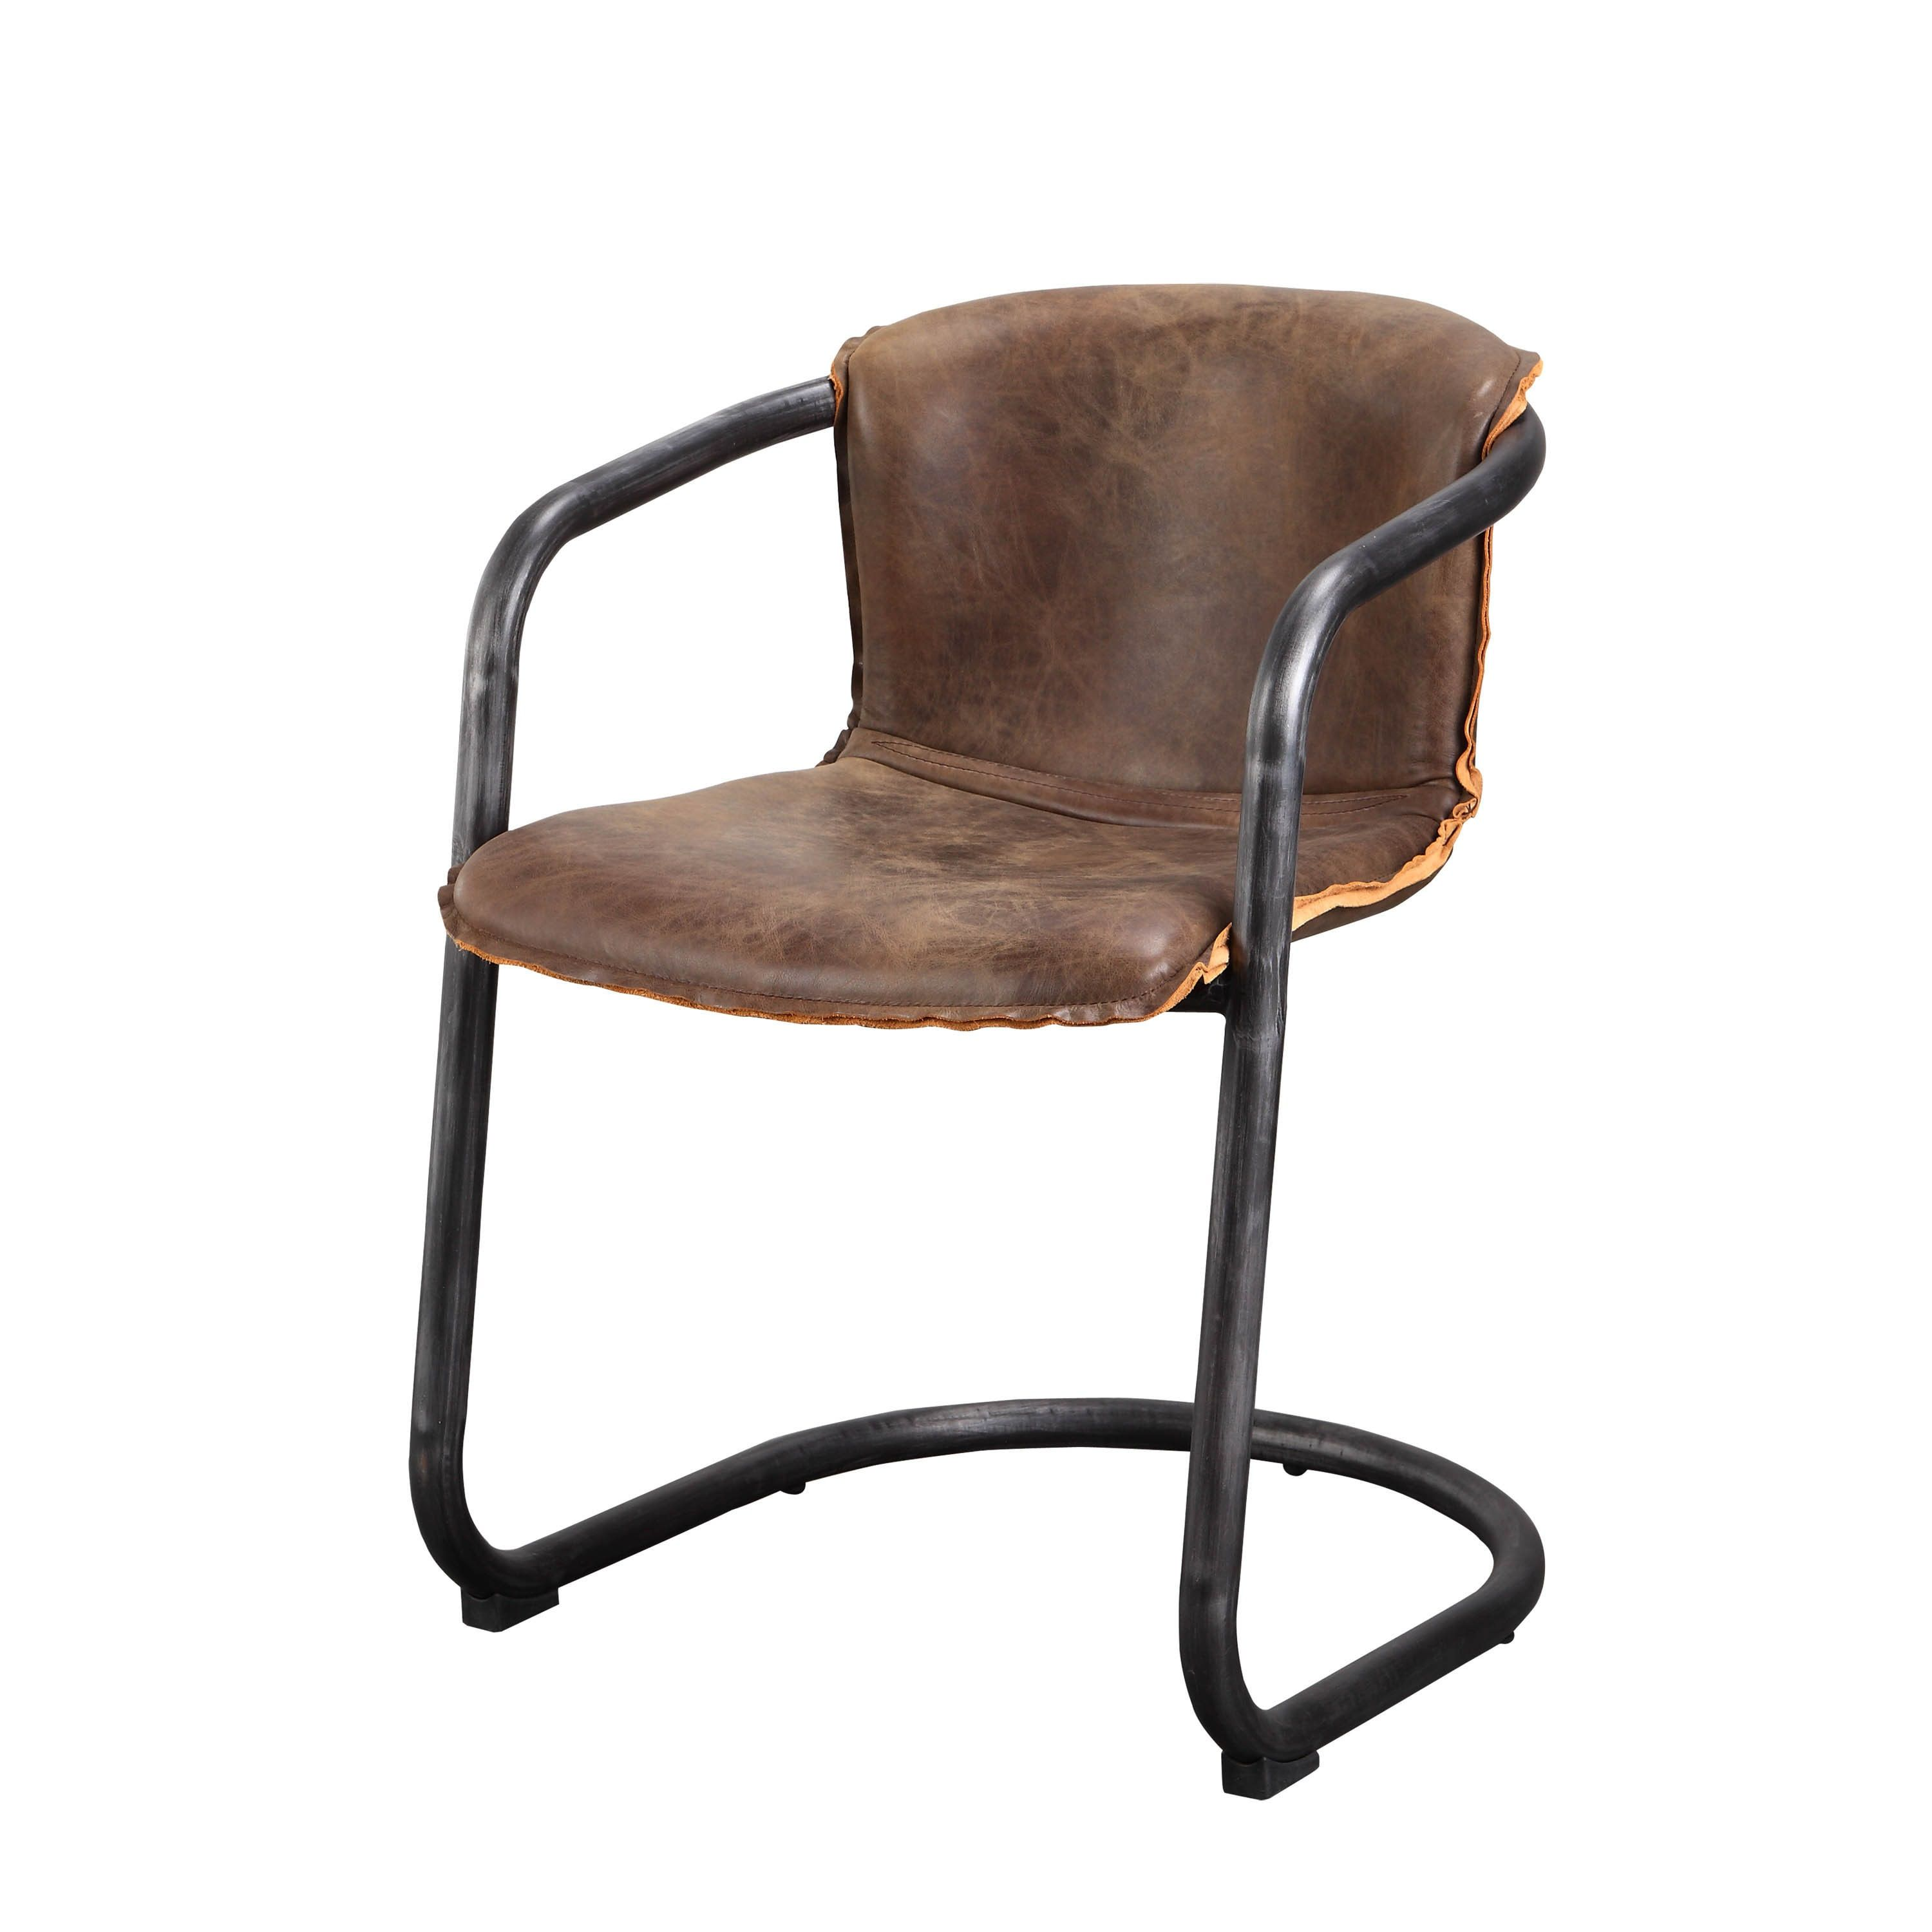 rustic leather dining chairs. Aurelle Home Distressed Rustic Leather Dining Chair (Set Of 2) | Overstock.com Shopping - The Best Deals On Chairs